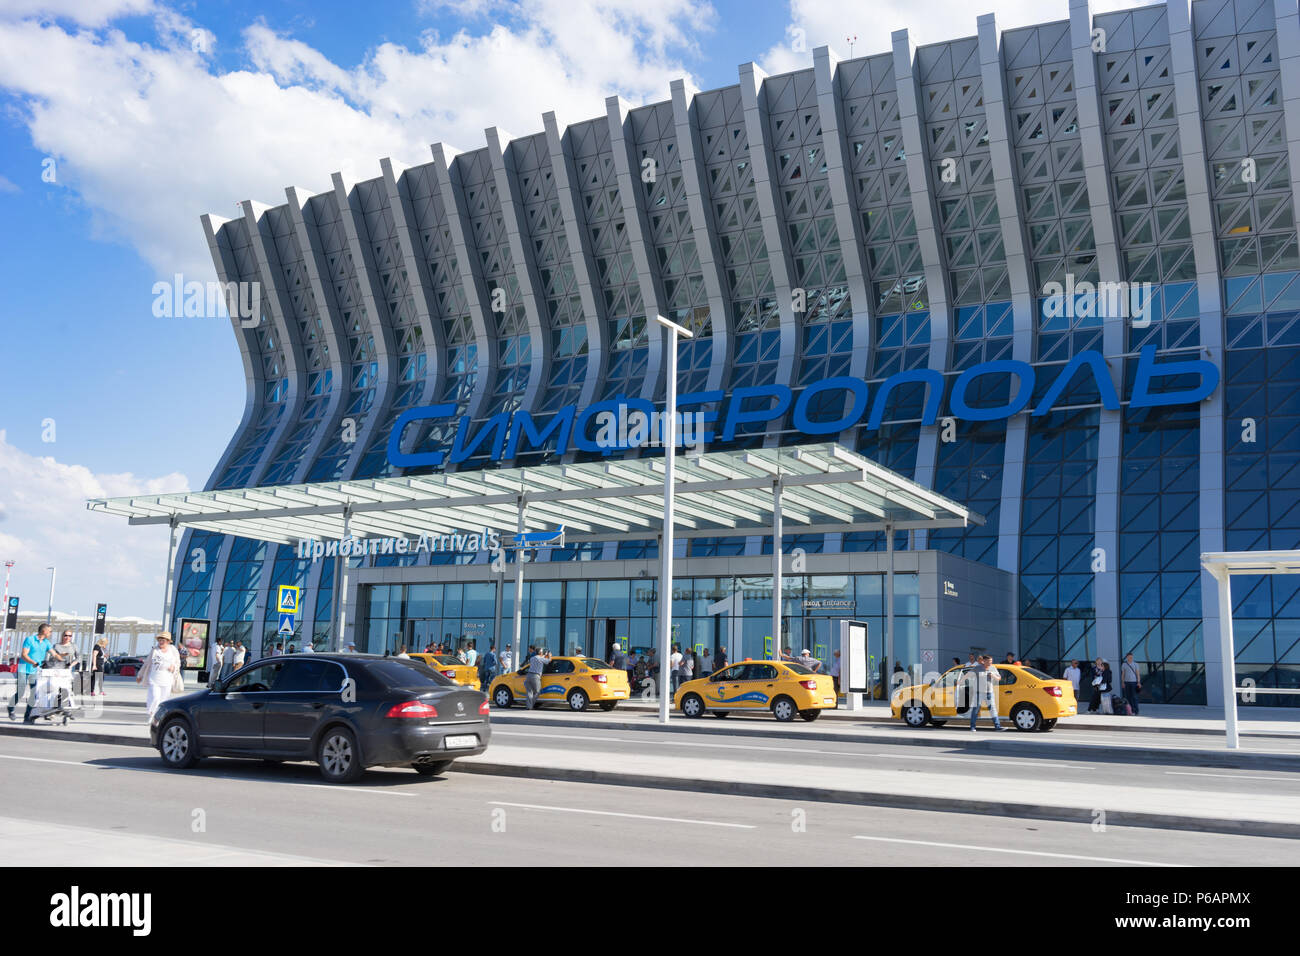 Airport Cars Stock Photos Amp Airport Cars Stock Images Alamy